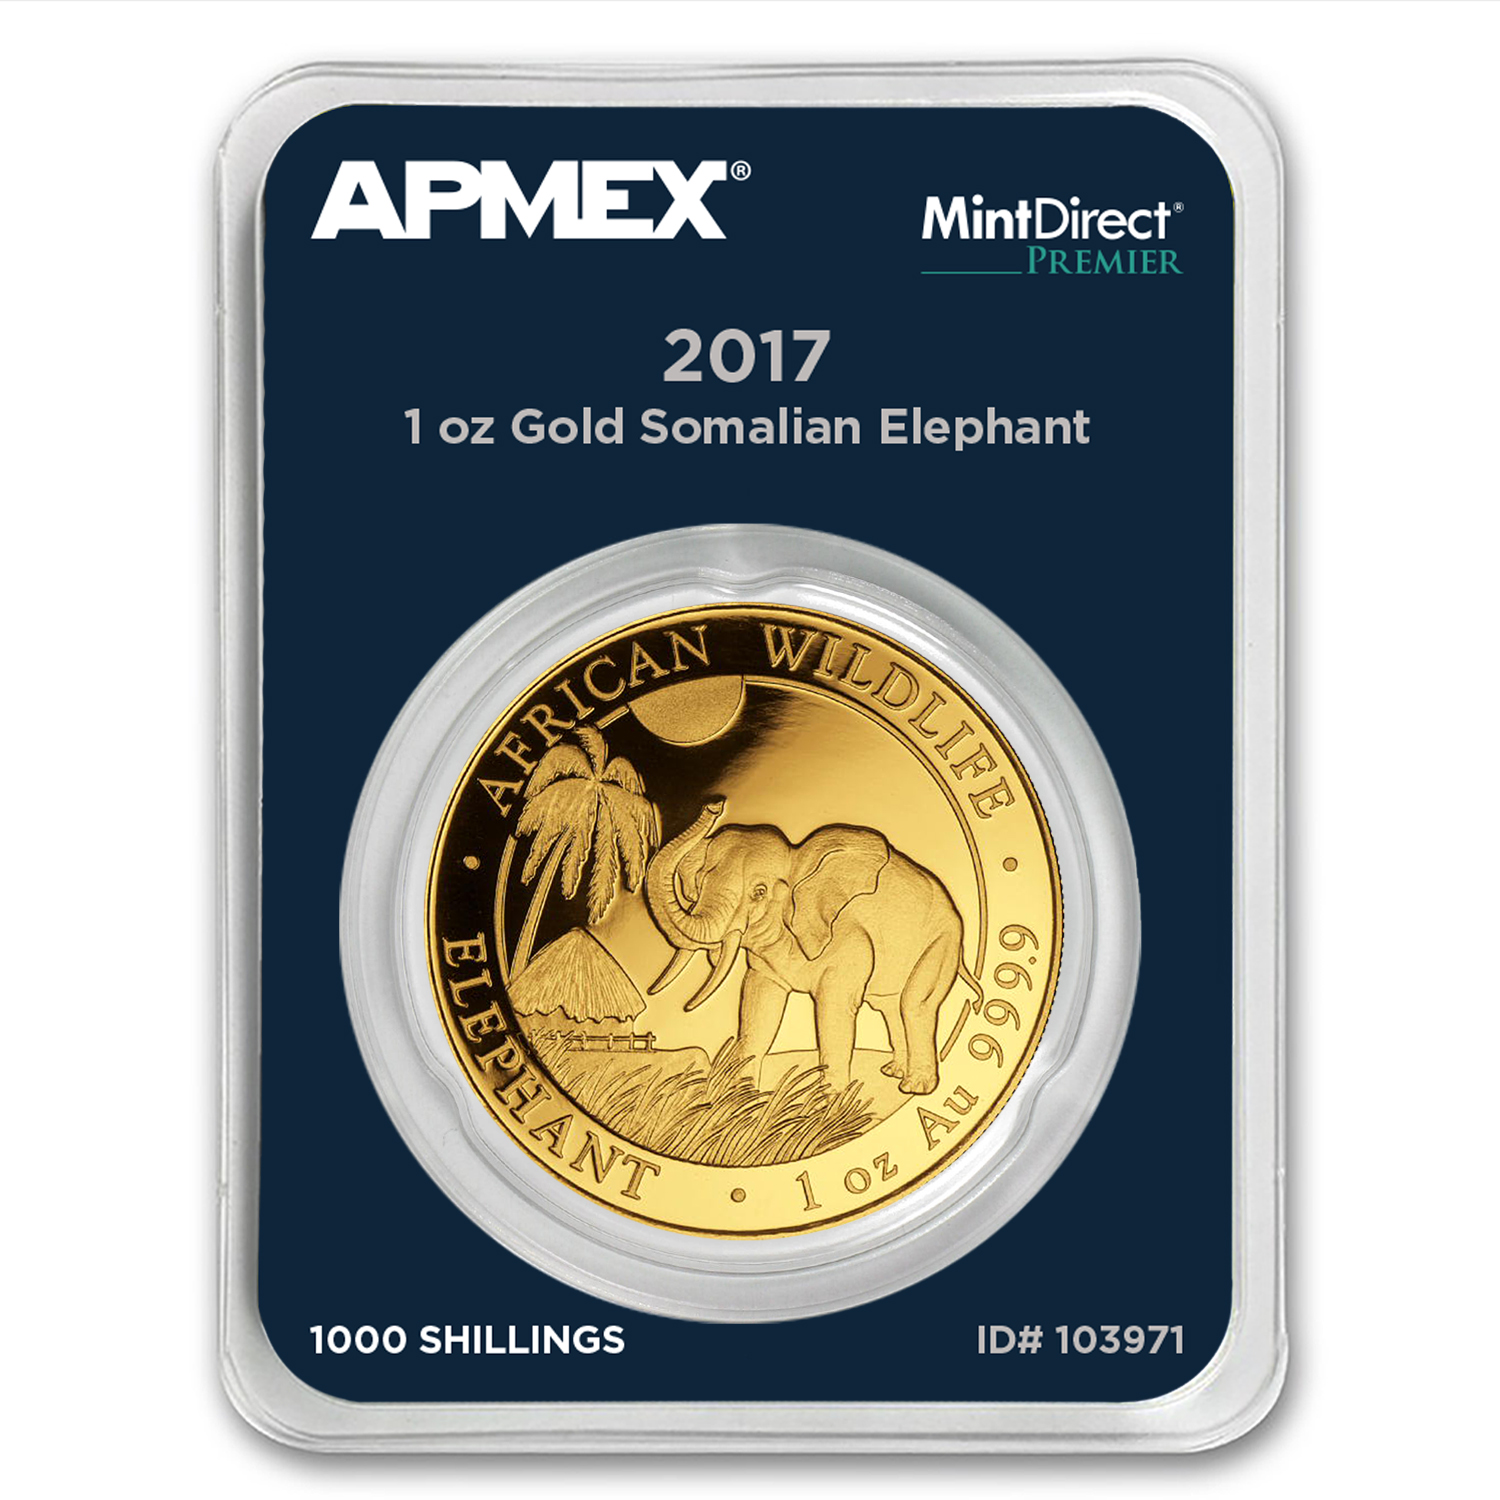 2017 Somalia 1 oz Gold Elephant (MintDirect® Premier Single)